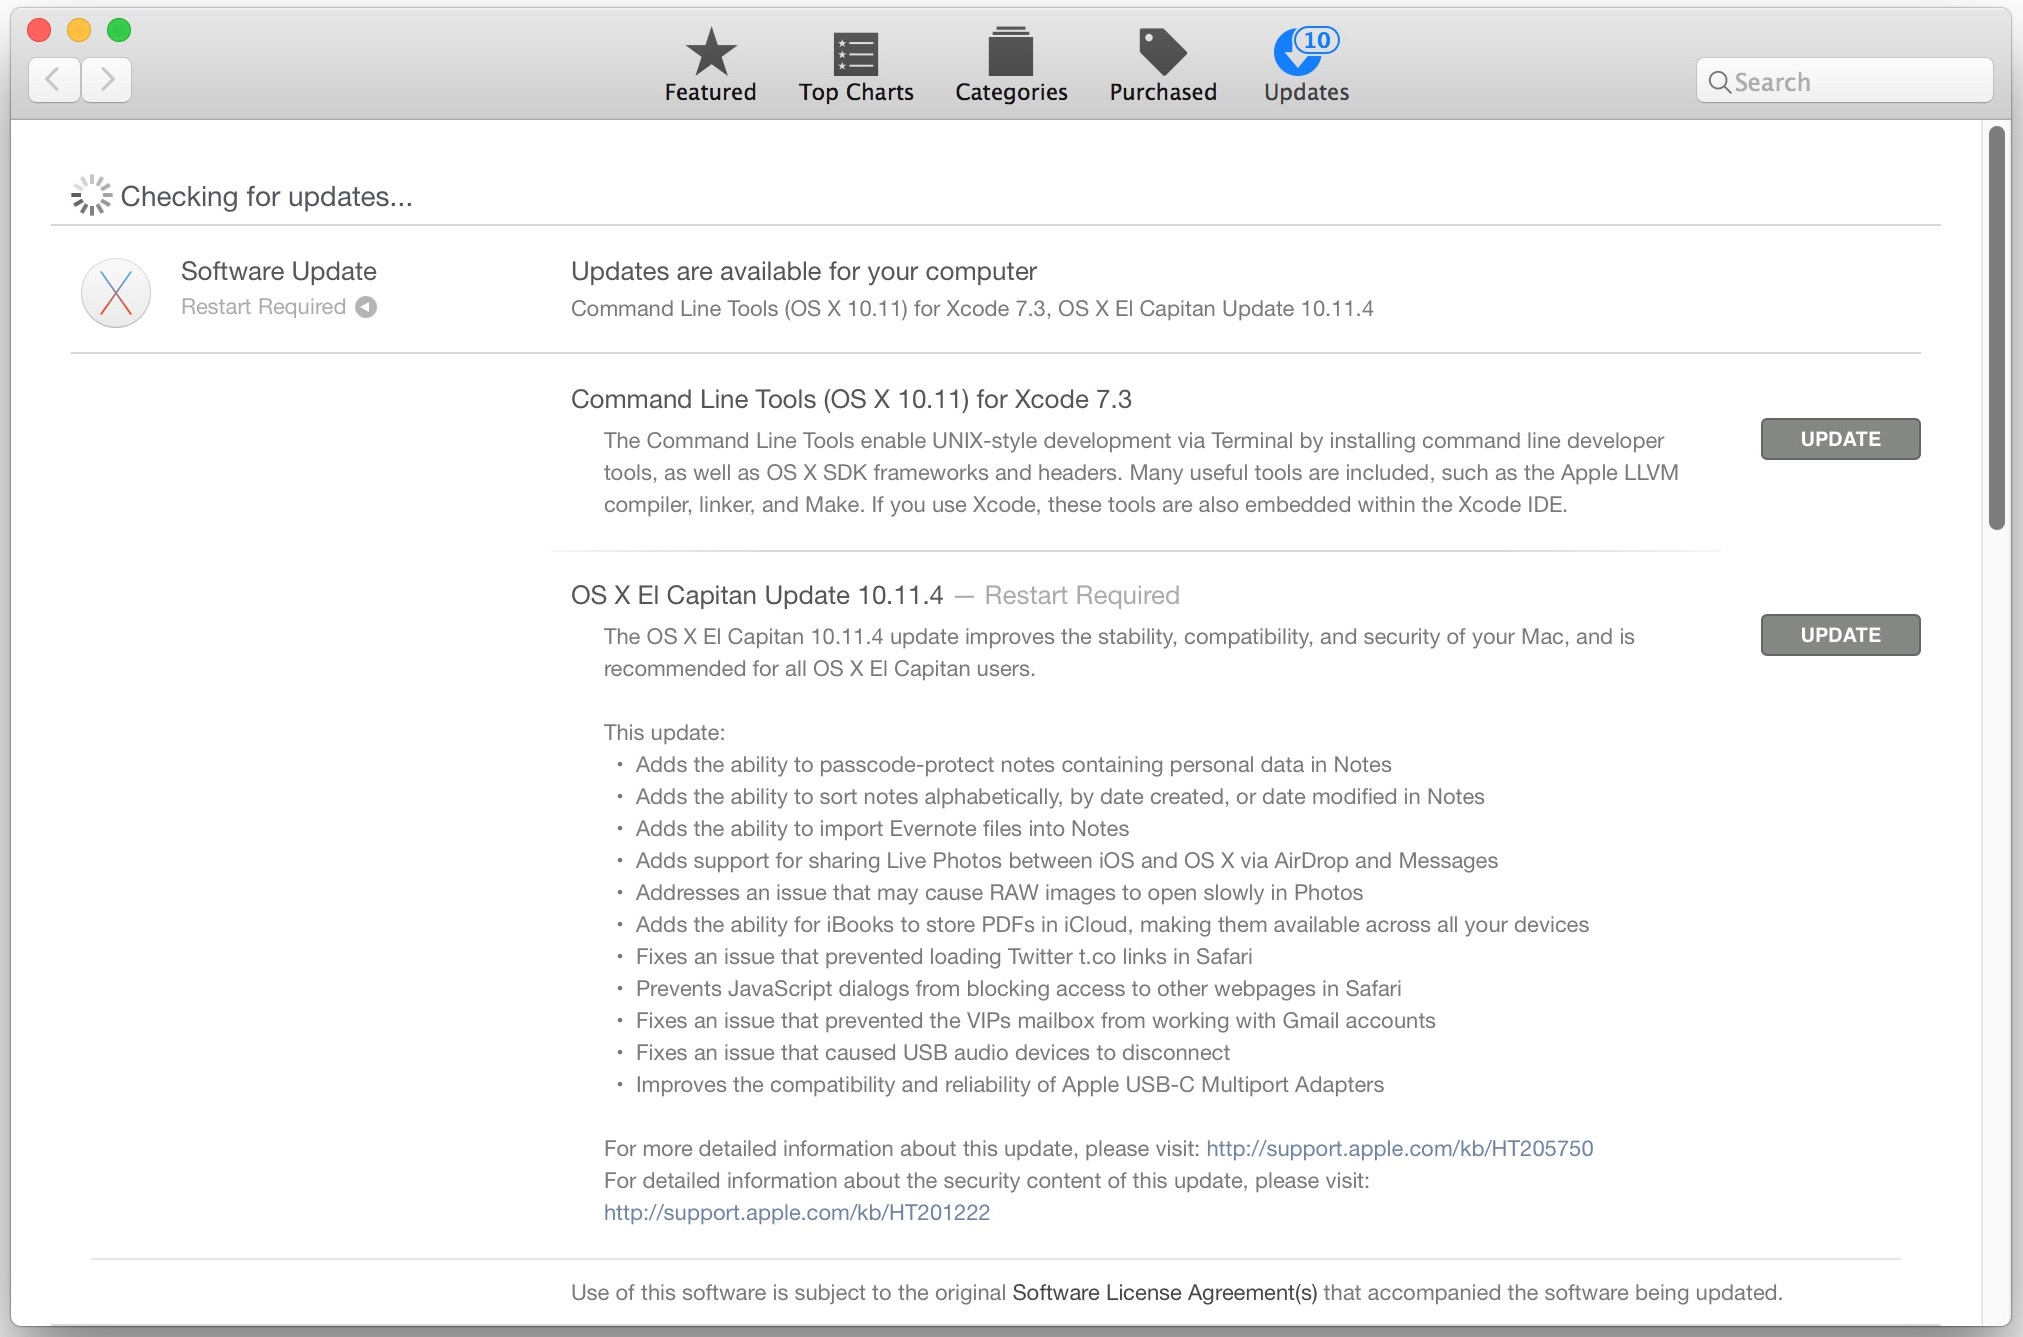 OS X 10.11.4 Update for Mac